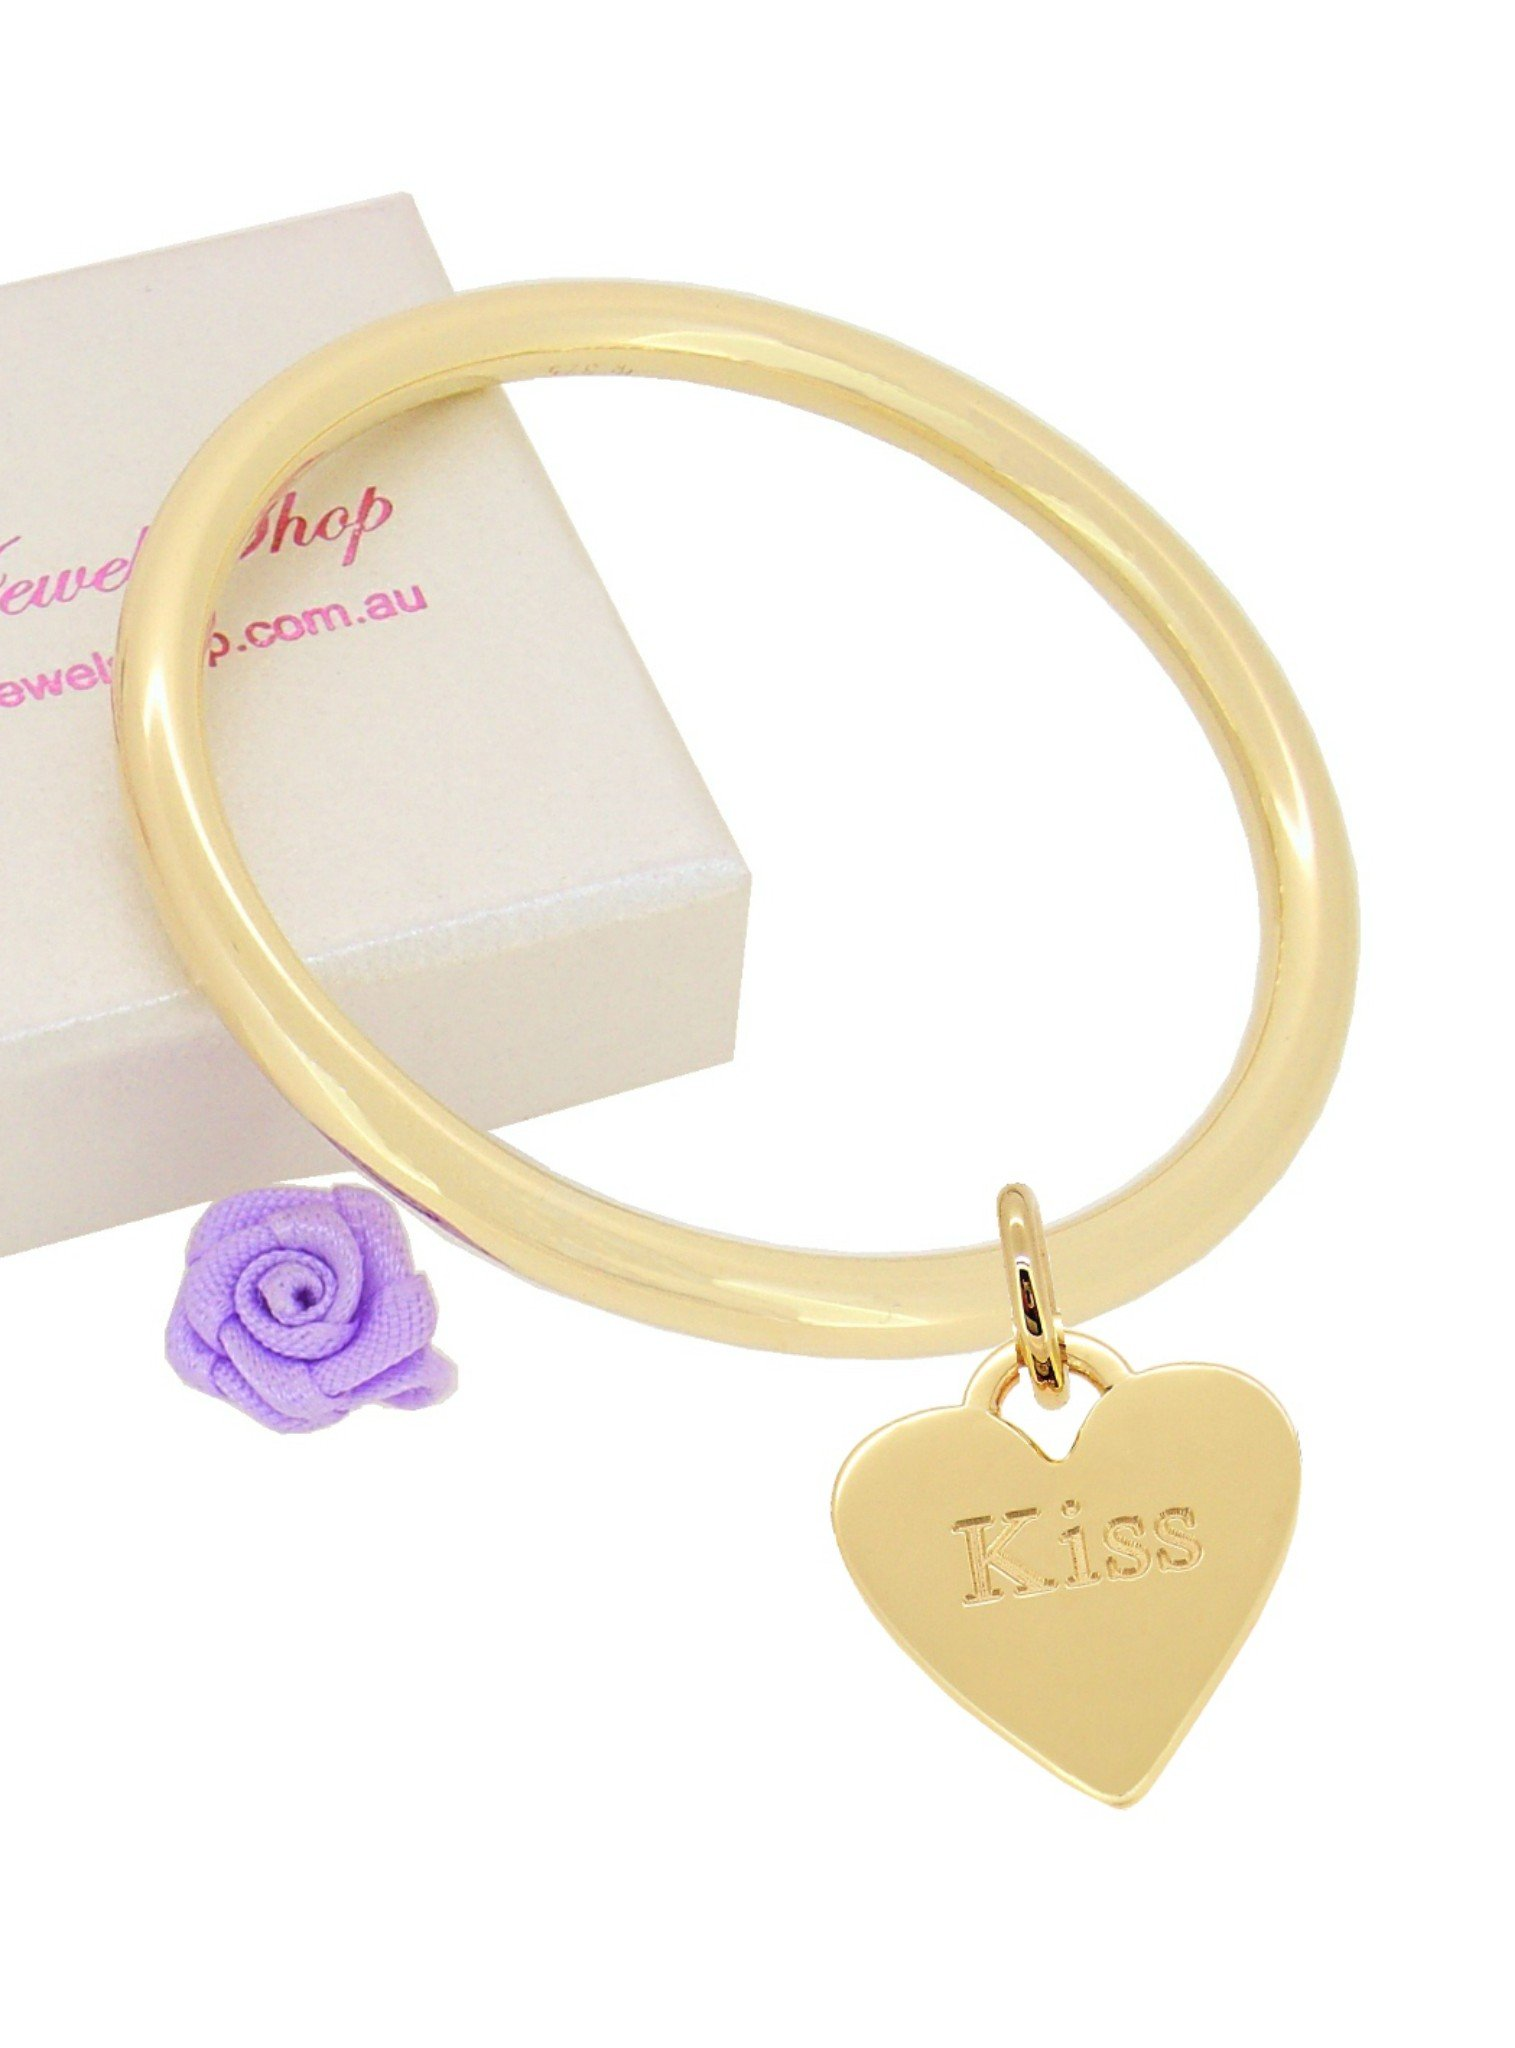 9ct Yellow Gold 4mm Golf Bangle Heart Tag Charm All Sizes Baby to Adult